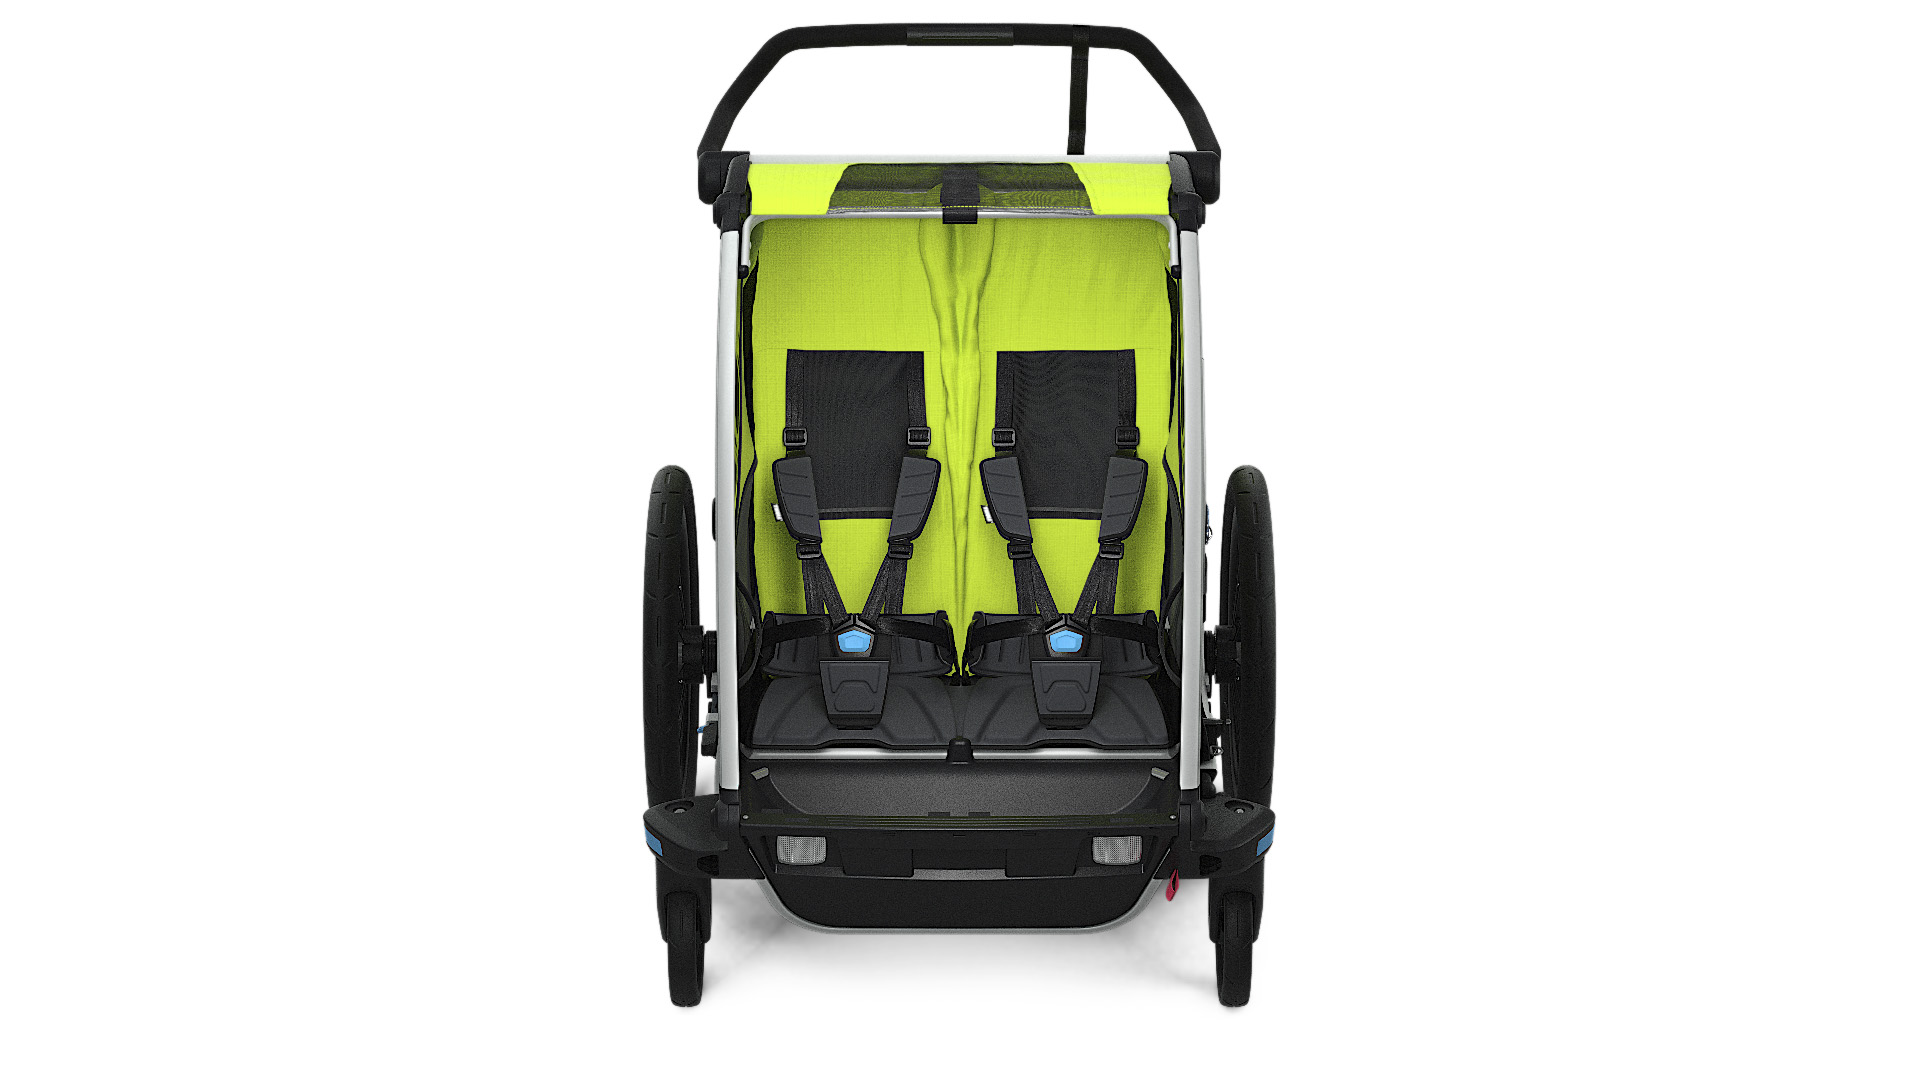 Thule_Chariot_Cab2_Chartreuse_Strolling_FRONT_10204001